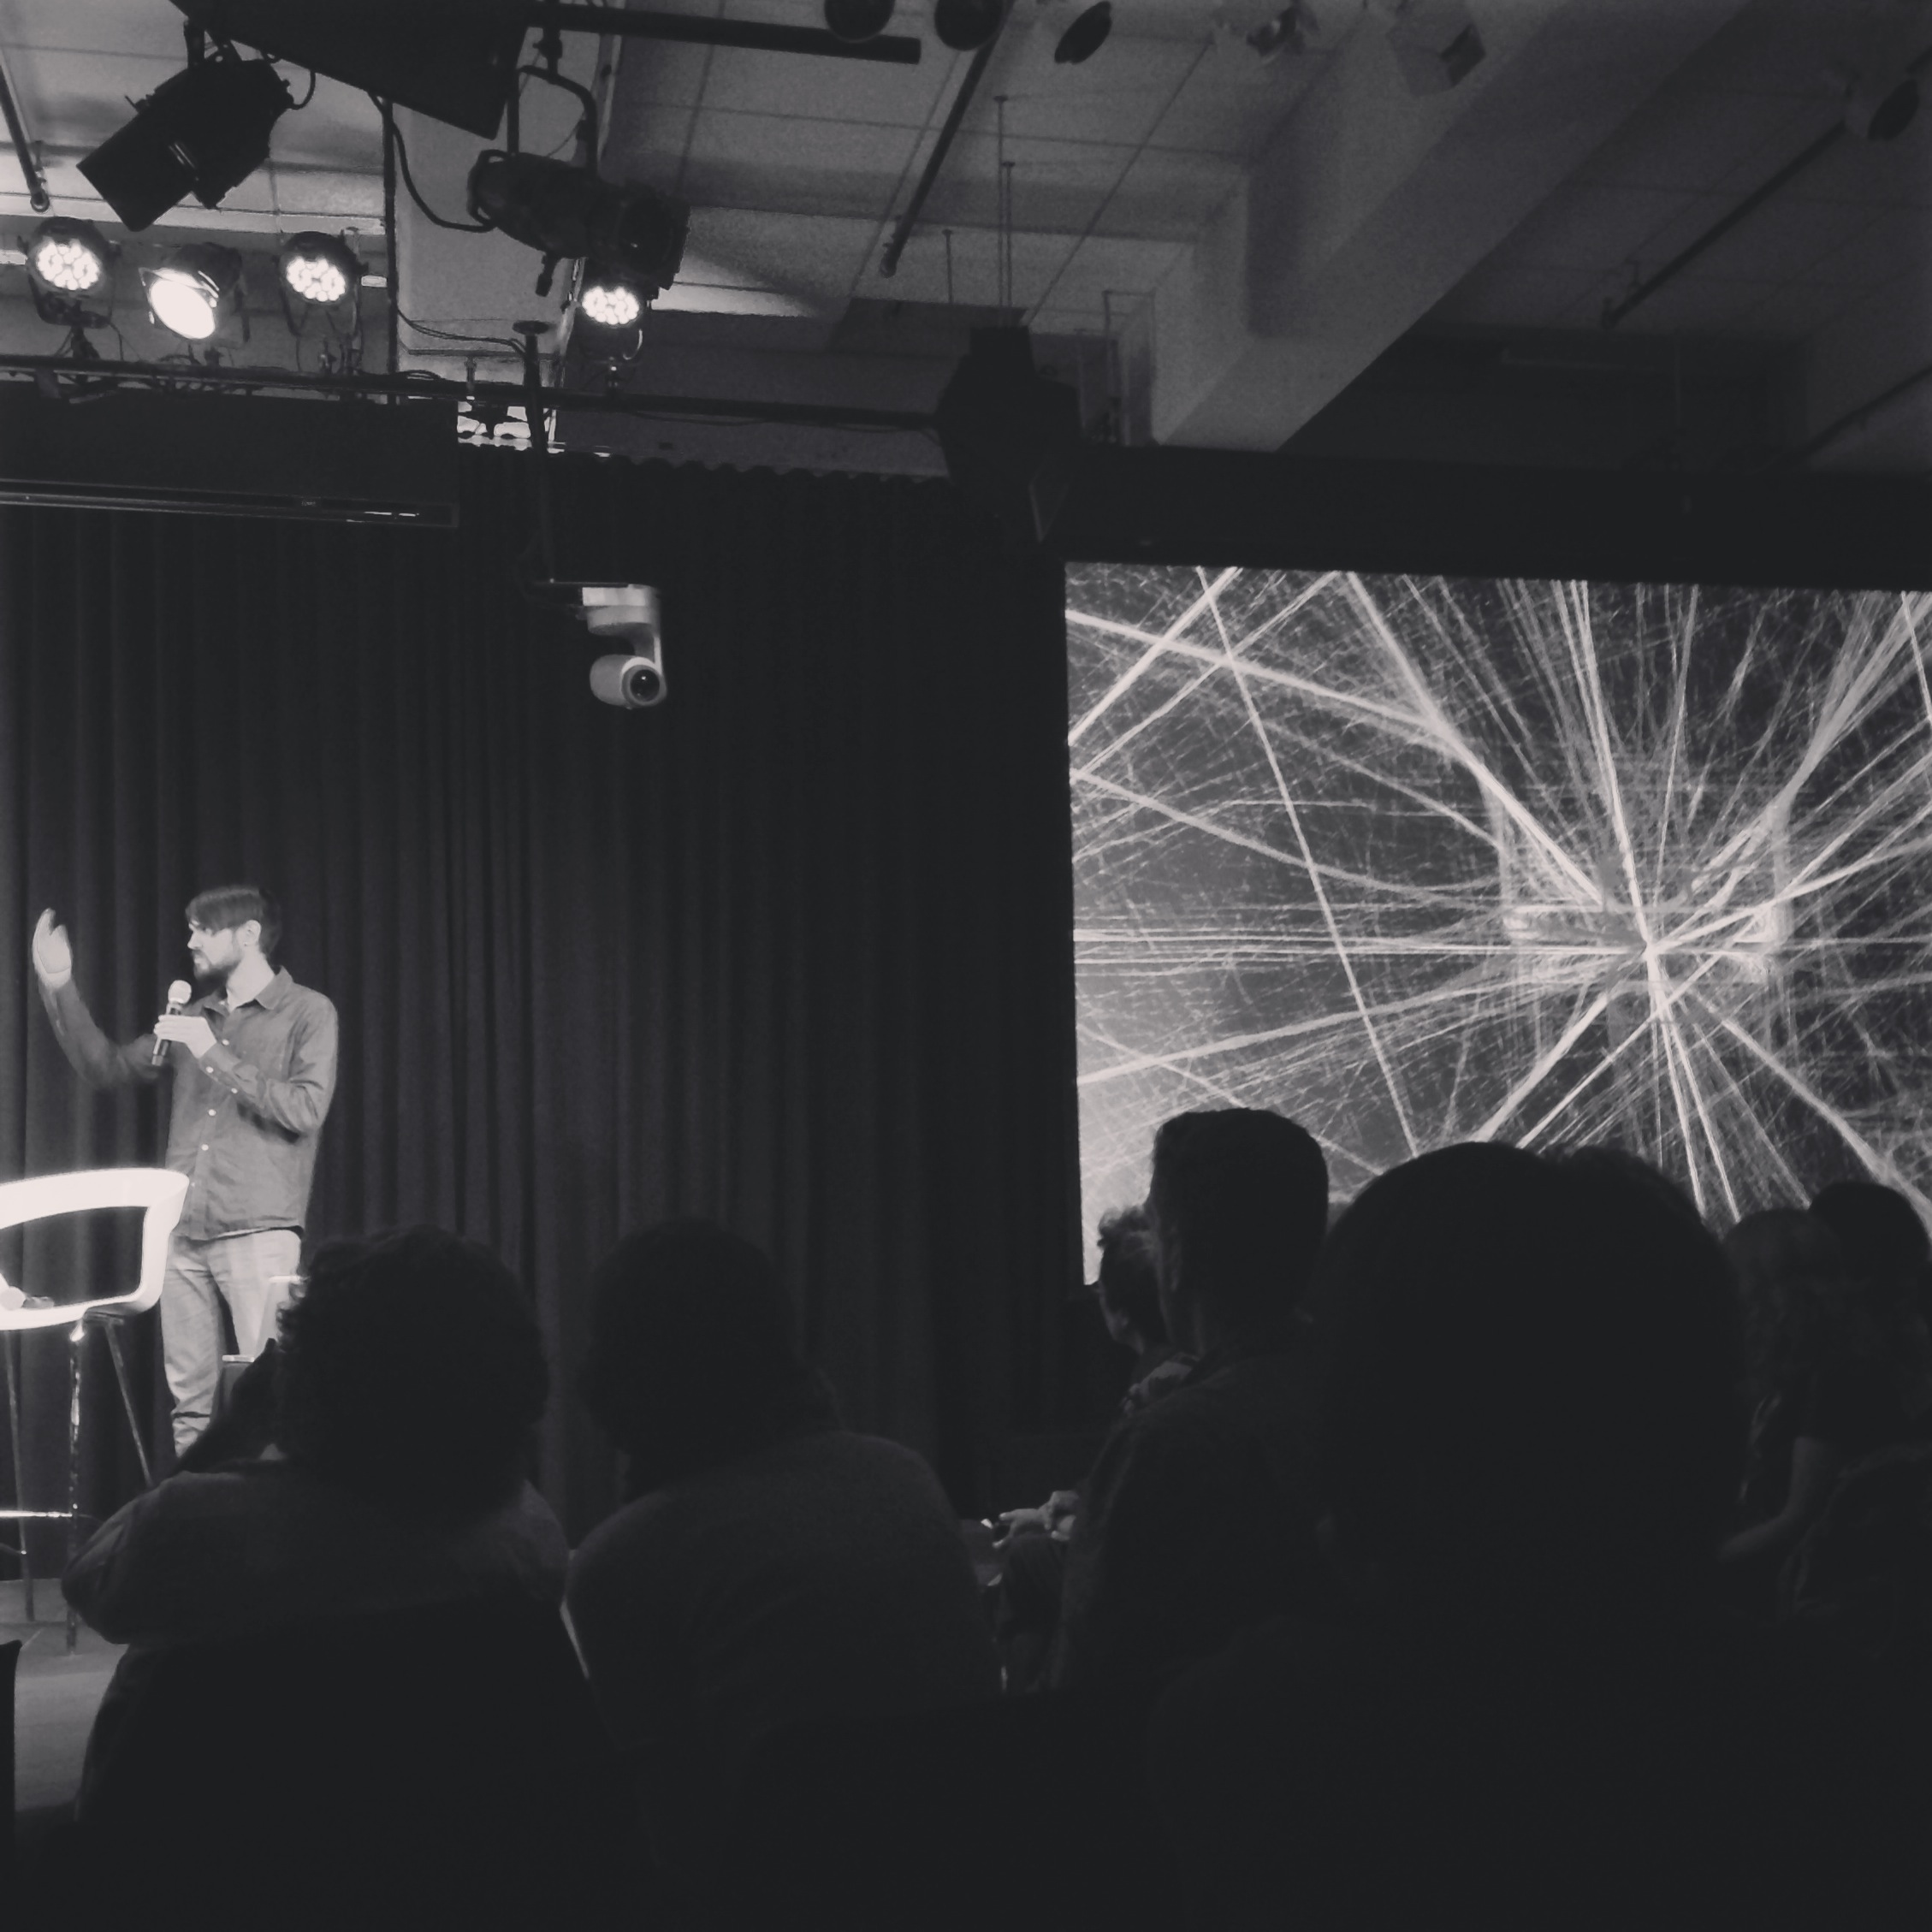 Aaron Koblin talking about merging science and art. At Google NYC.